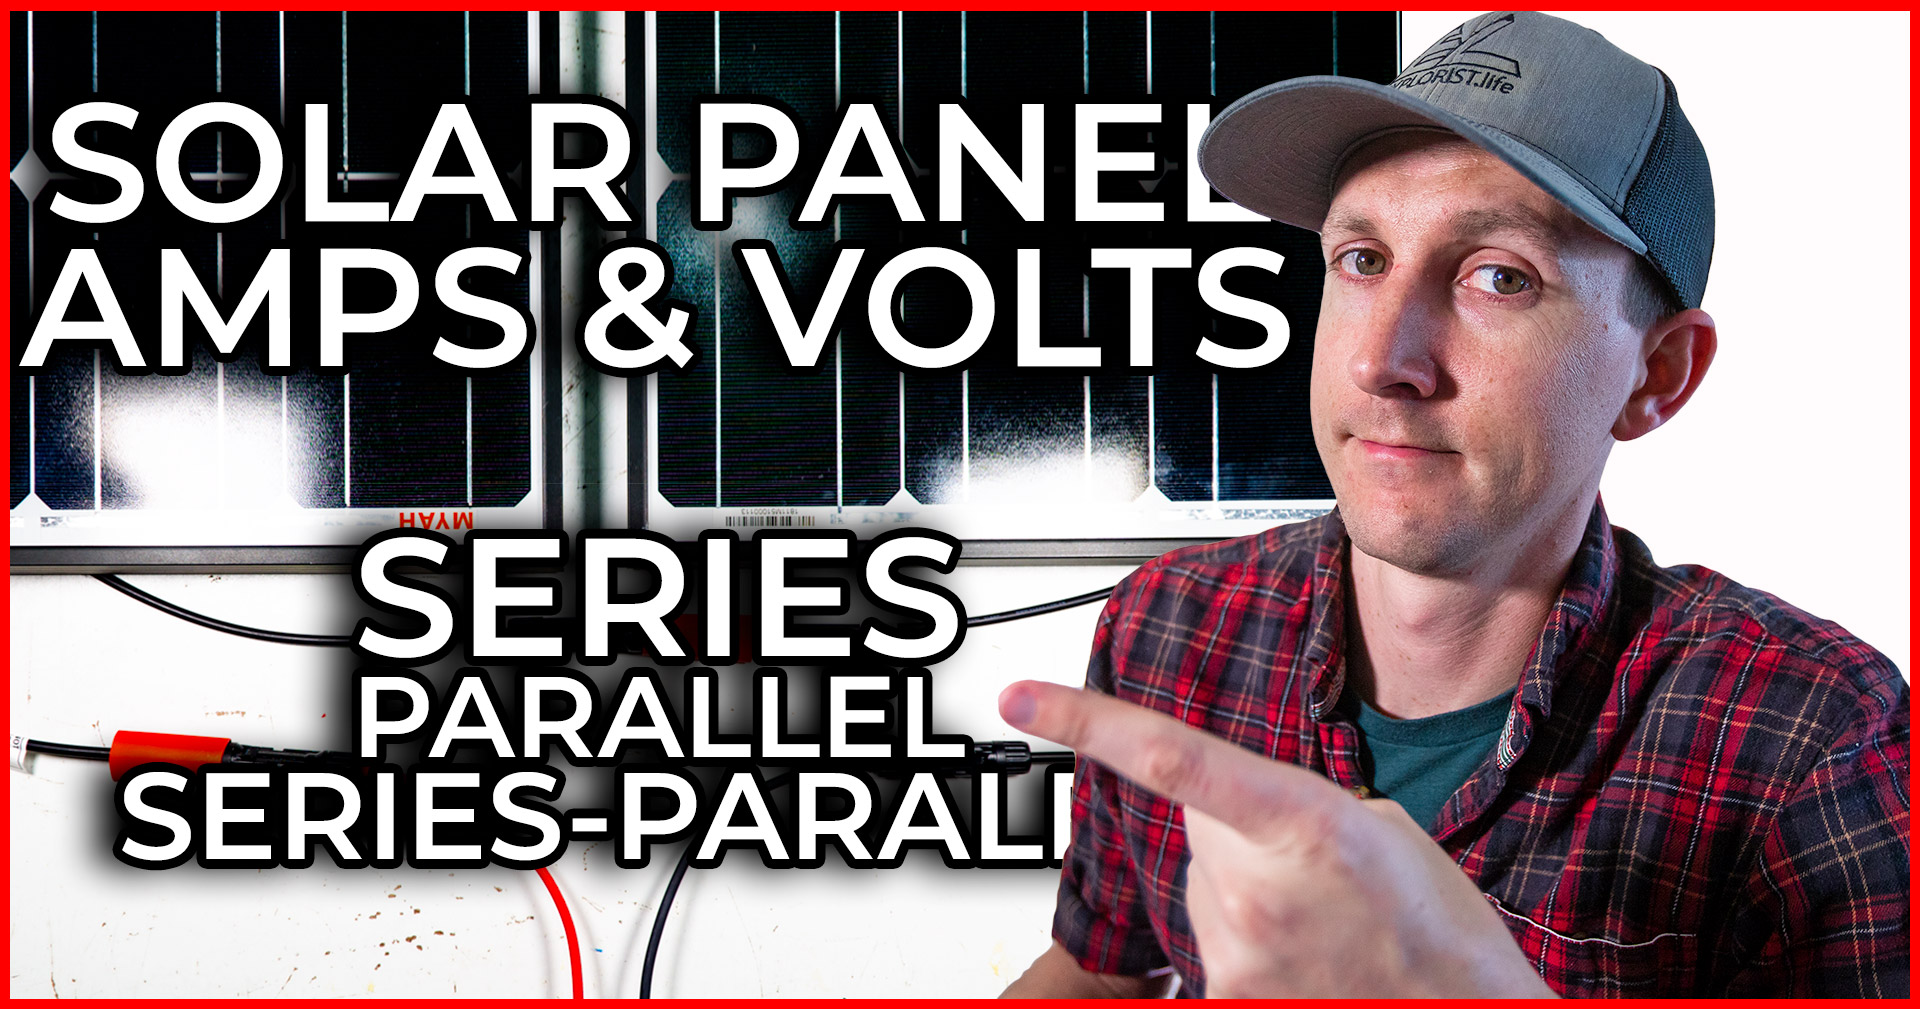 How Series Vs Parallel Wired Solar Panels Affects Amps & Volts